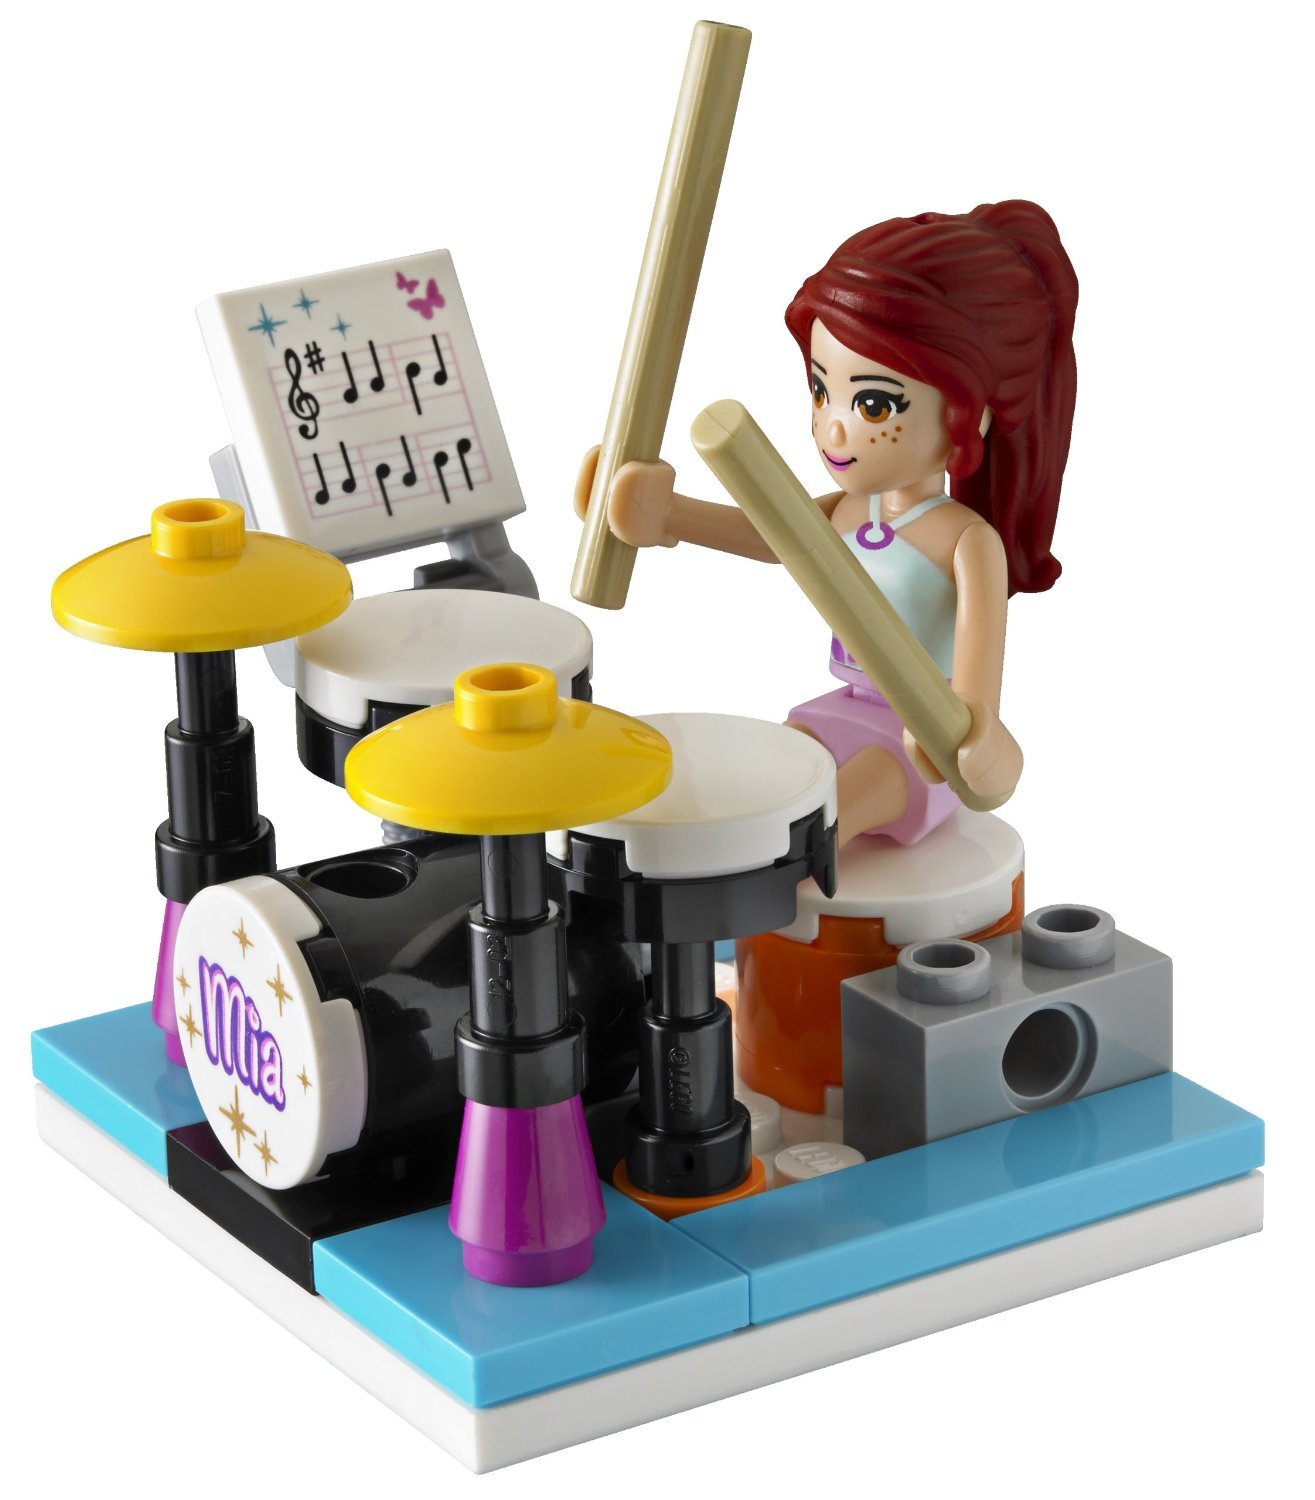 My lego style lego friends mia 39 s bedroom 3939 for Chambre lego